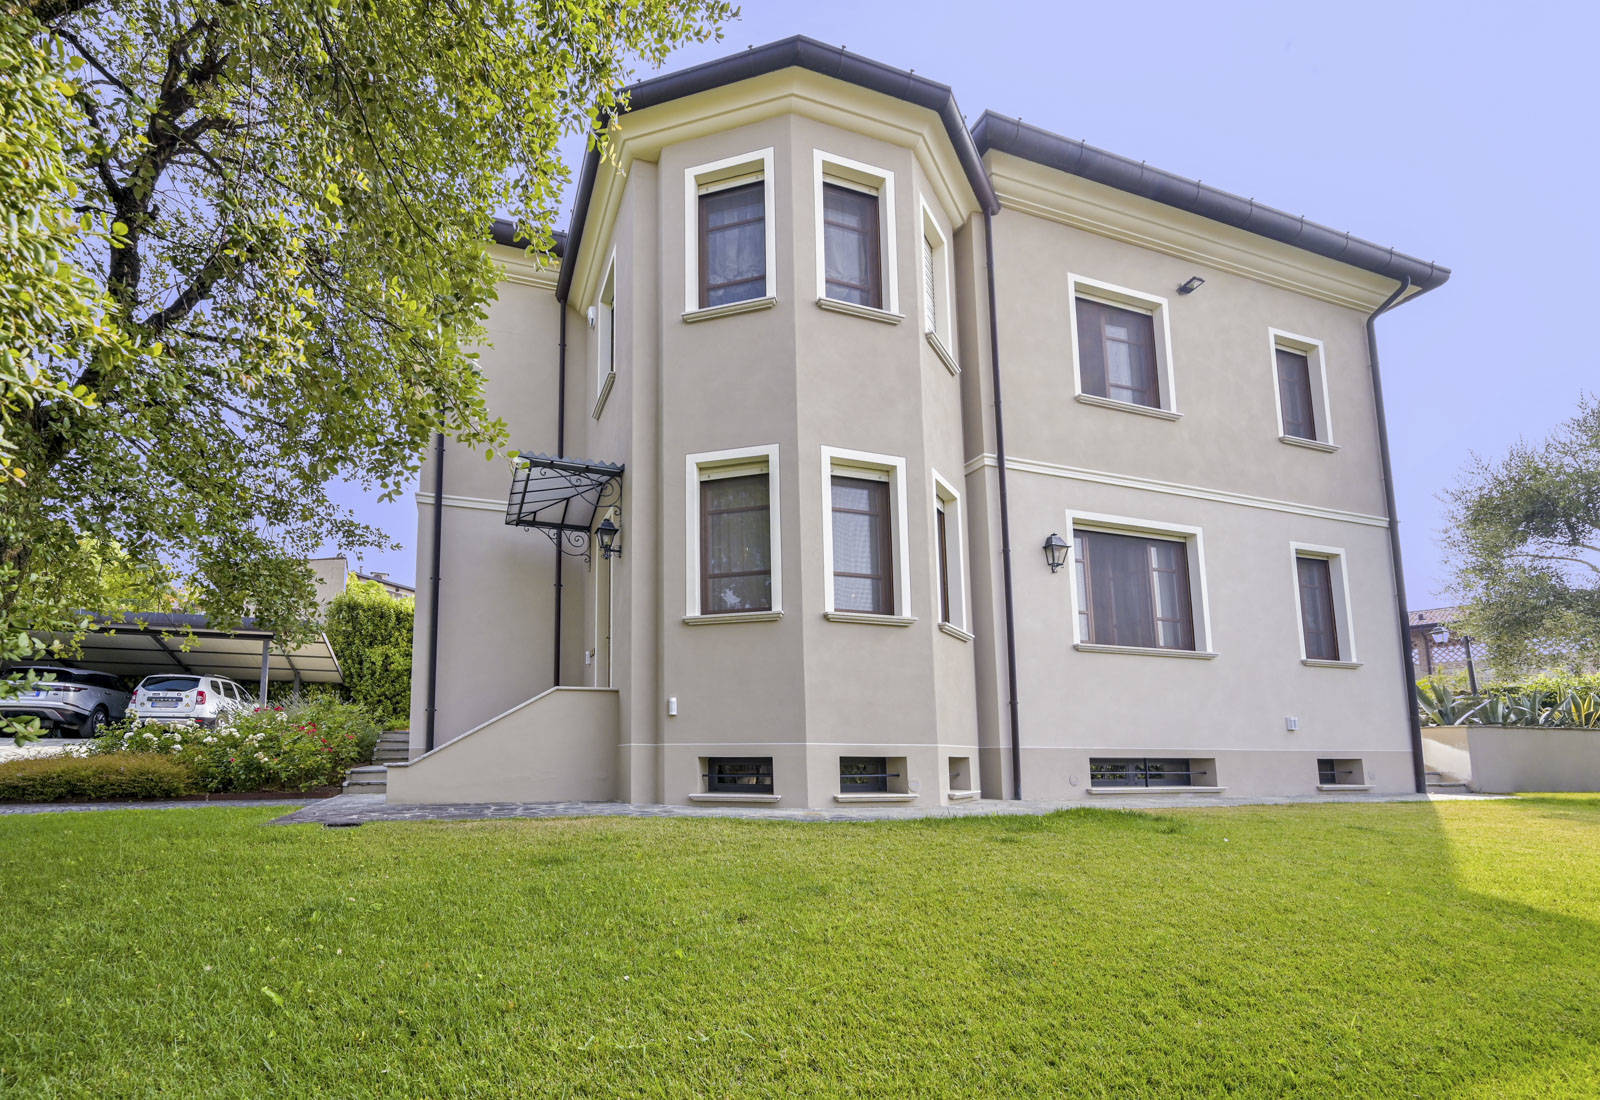 luxury villa for sale erbusco brescia